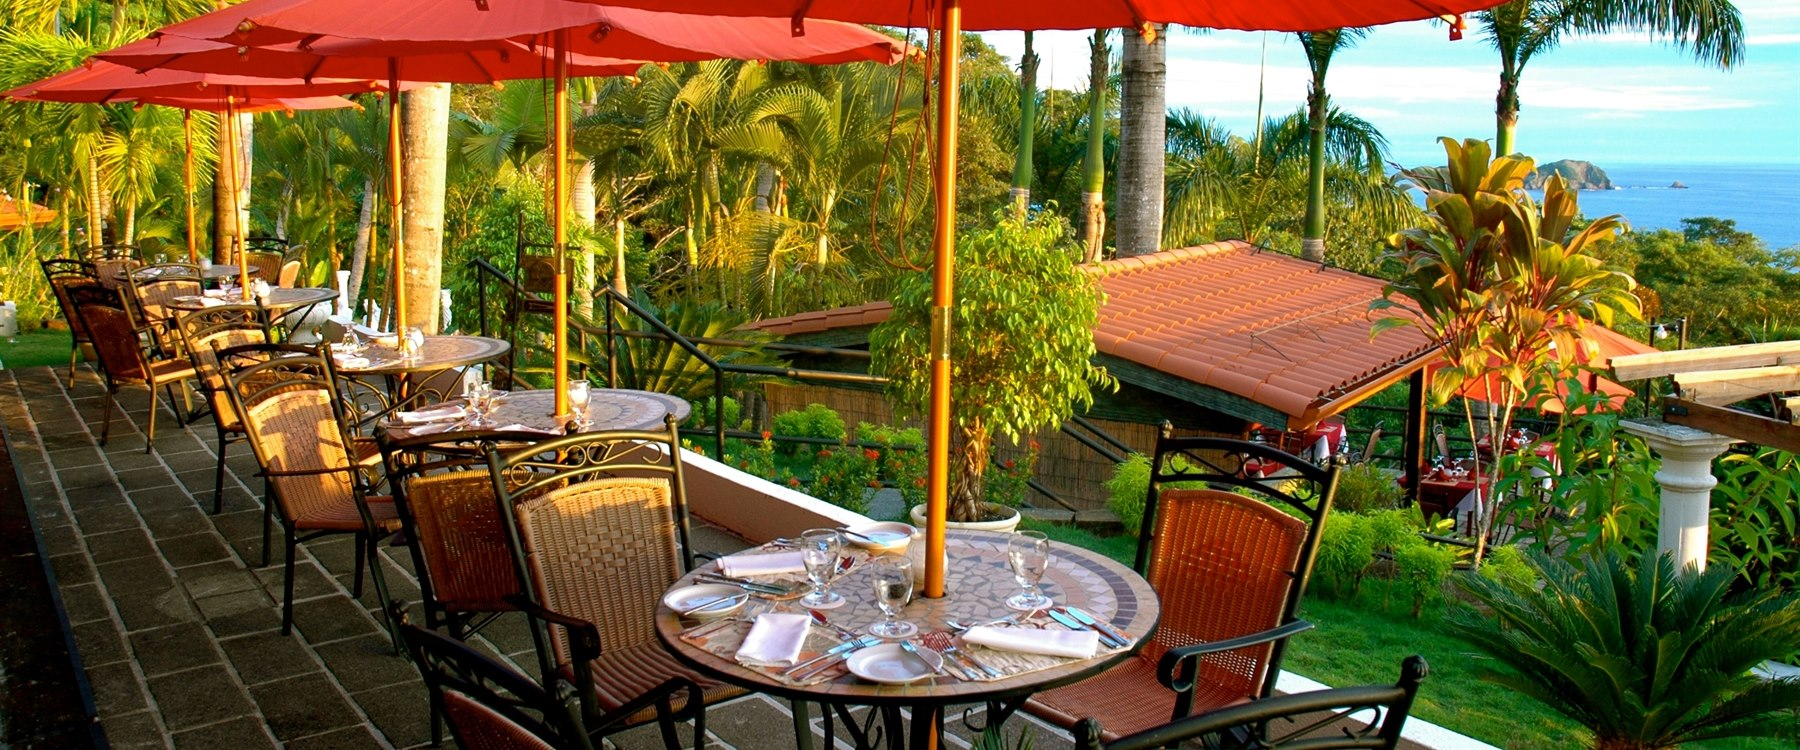 Terrace dining at Parador Resort & Spa